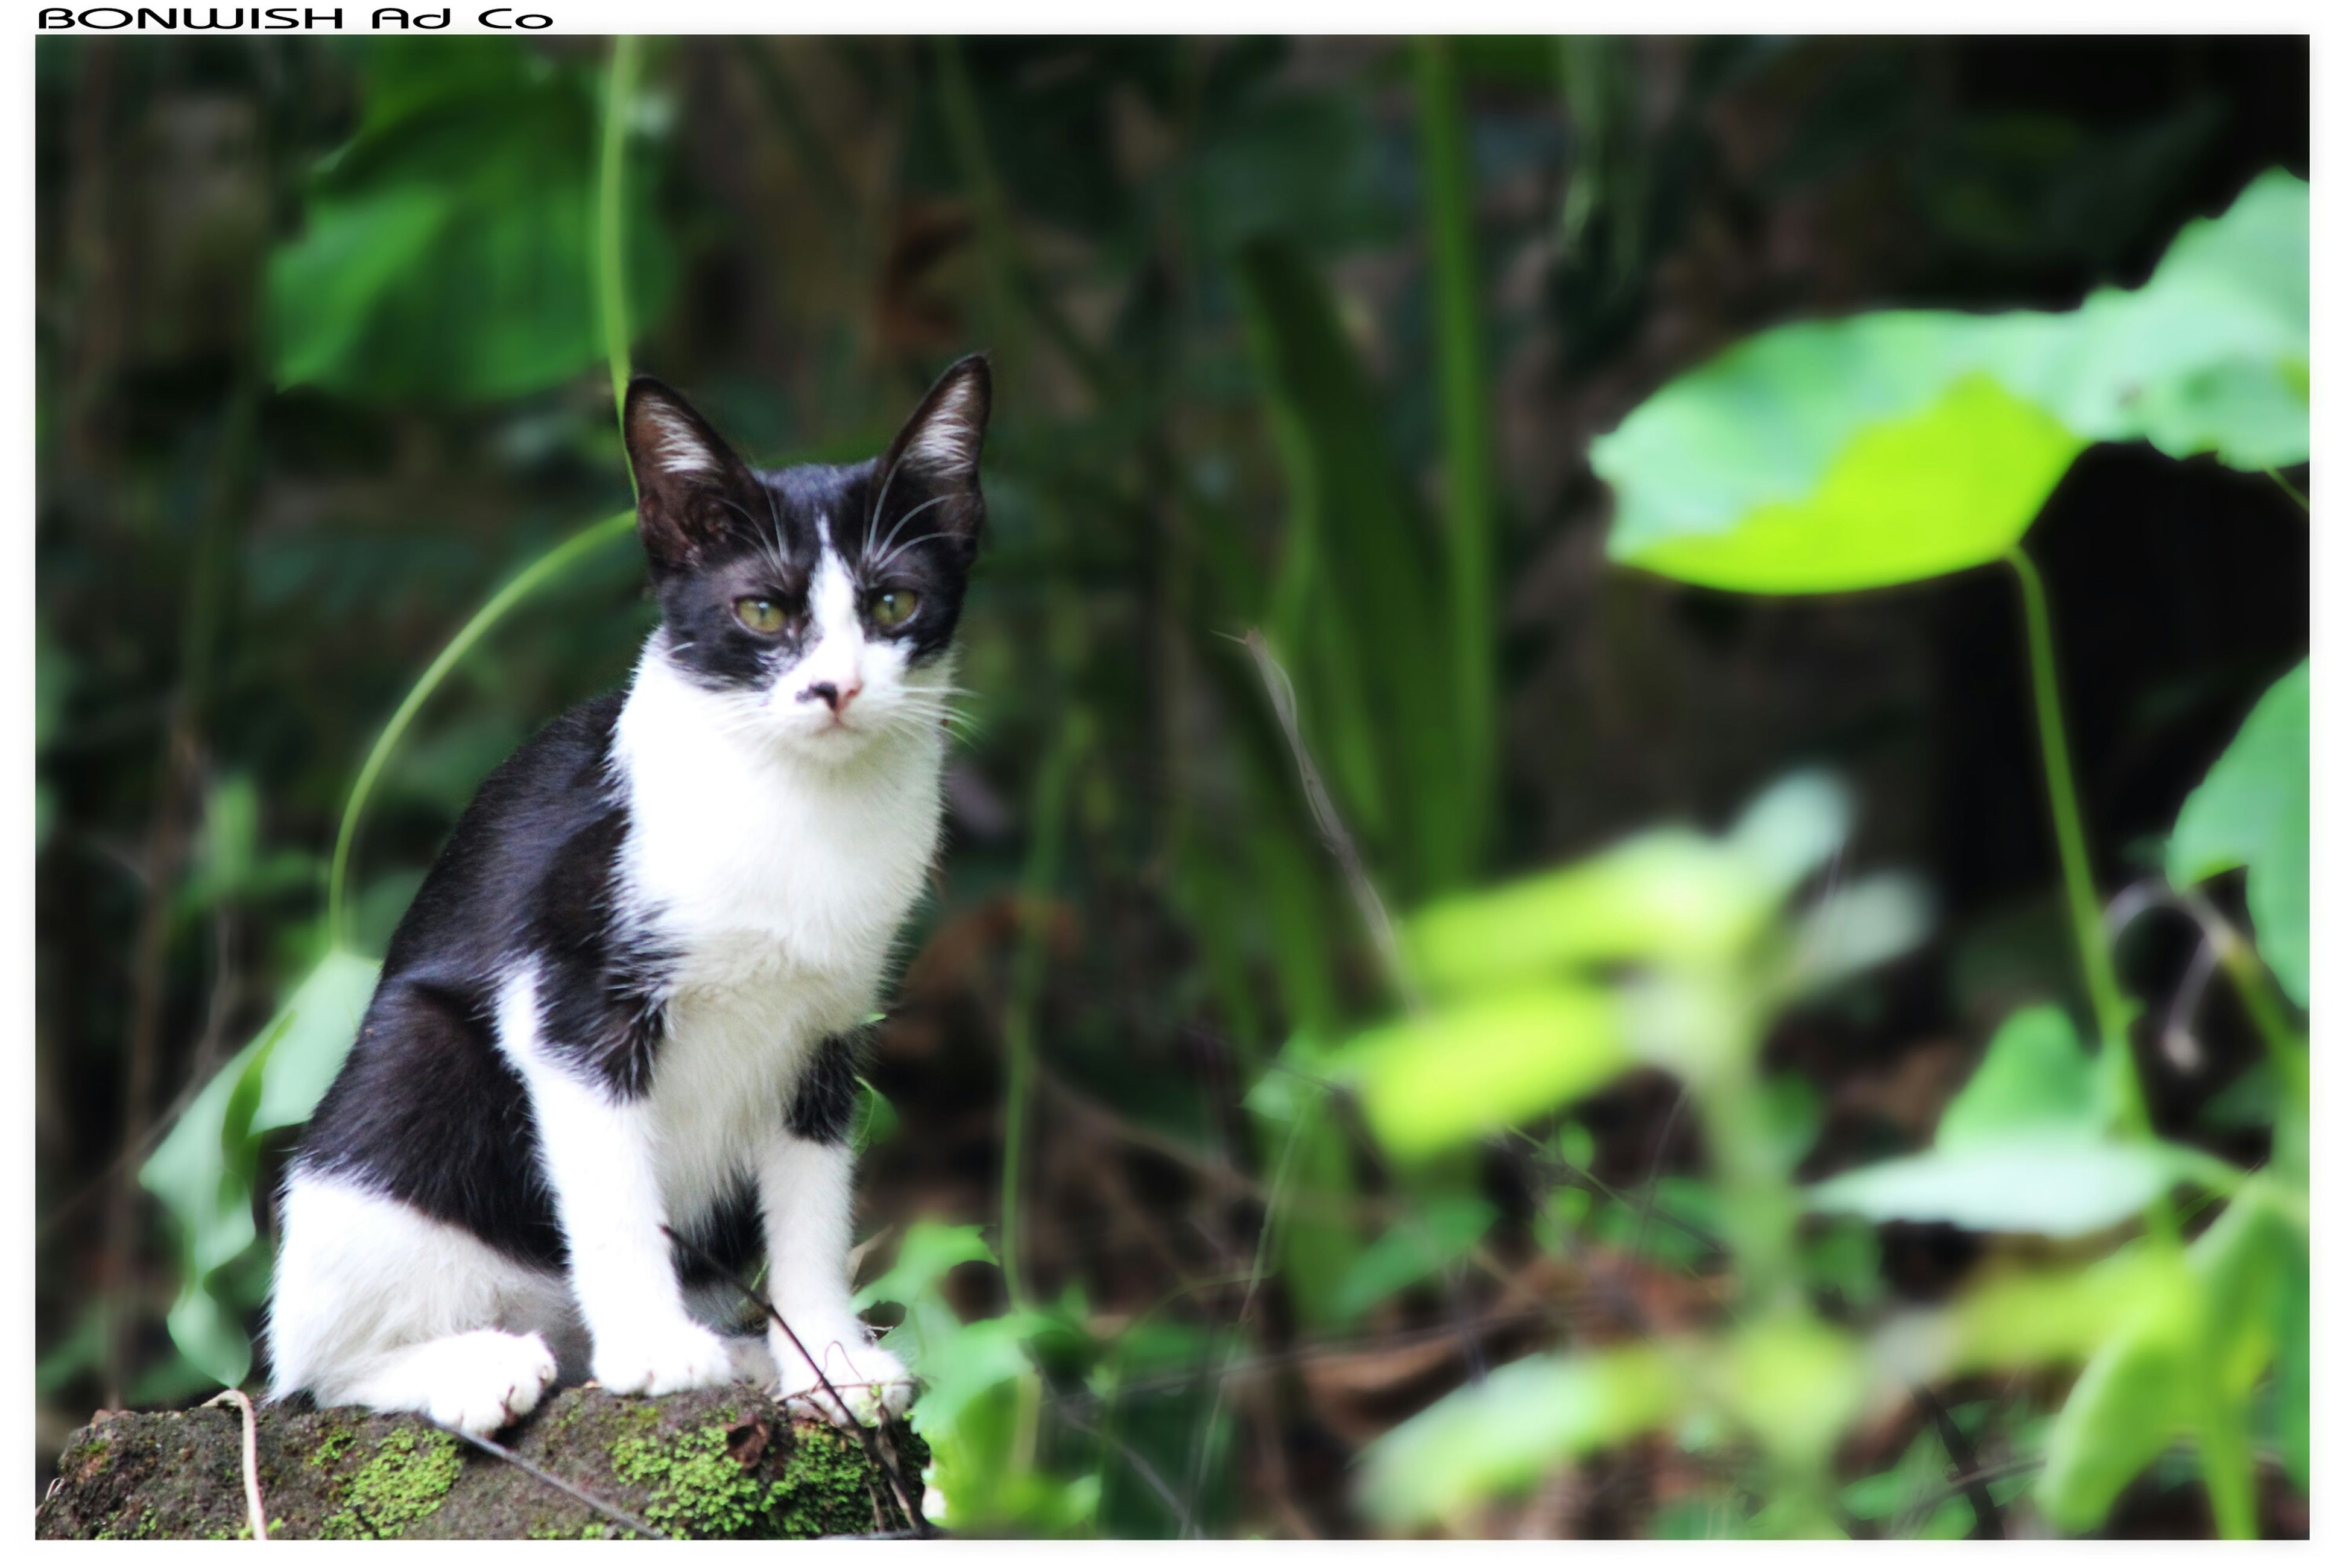 animal themes, domestic cat, one animal, pets, cat, domestic animals, feline, mammal, transfer print, portrait, looking at camera, whisker, auto post production filter, sitting, alertness, staring, focus on foreground, close-up, front view, zoology